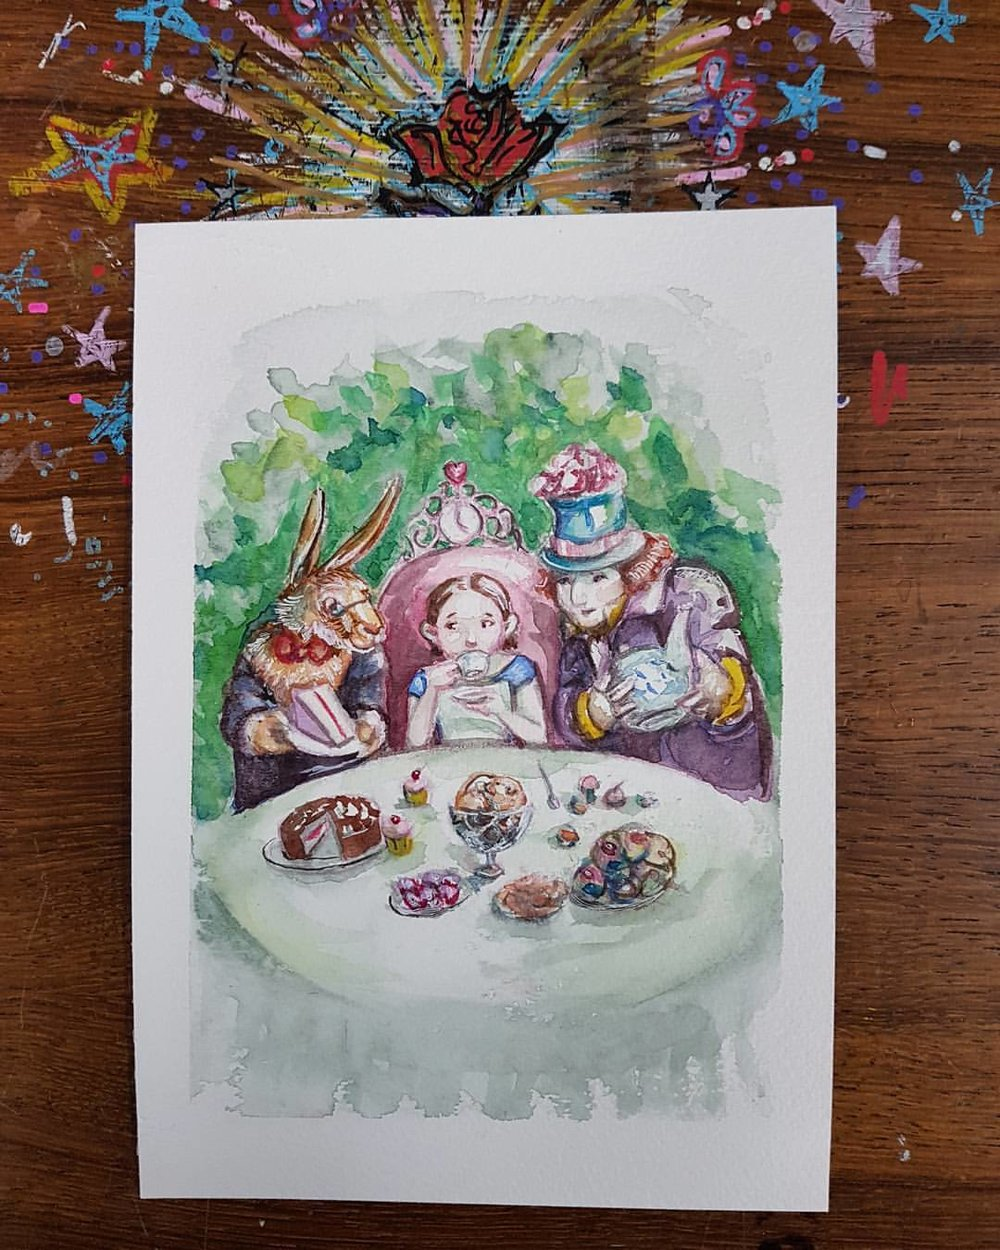 A Mad Tea Party that will be up for sale next week via the @changelingartist Facebook page. Managed to finish this today between serving some really lovely customers at the art store I work at  (just wish they had of spent more 😉). Watercolour and gel pen on 300gsm Fluid Cold Press. Starting bid is $95.